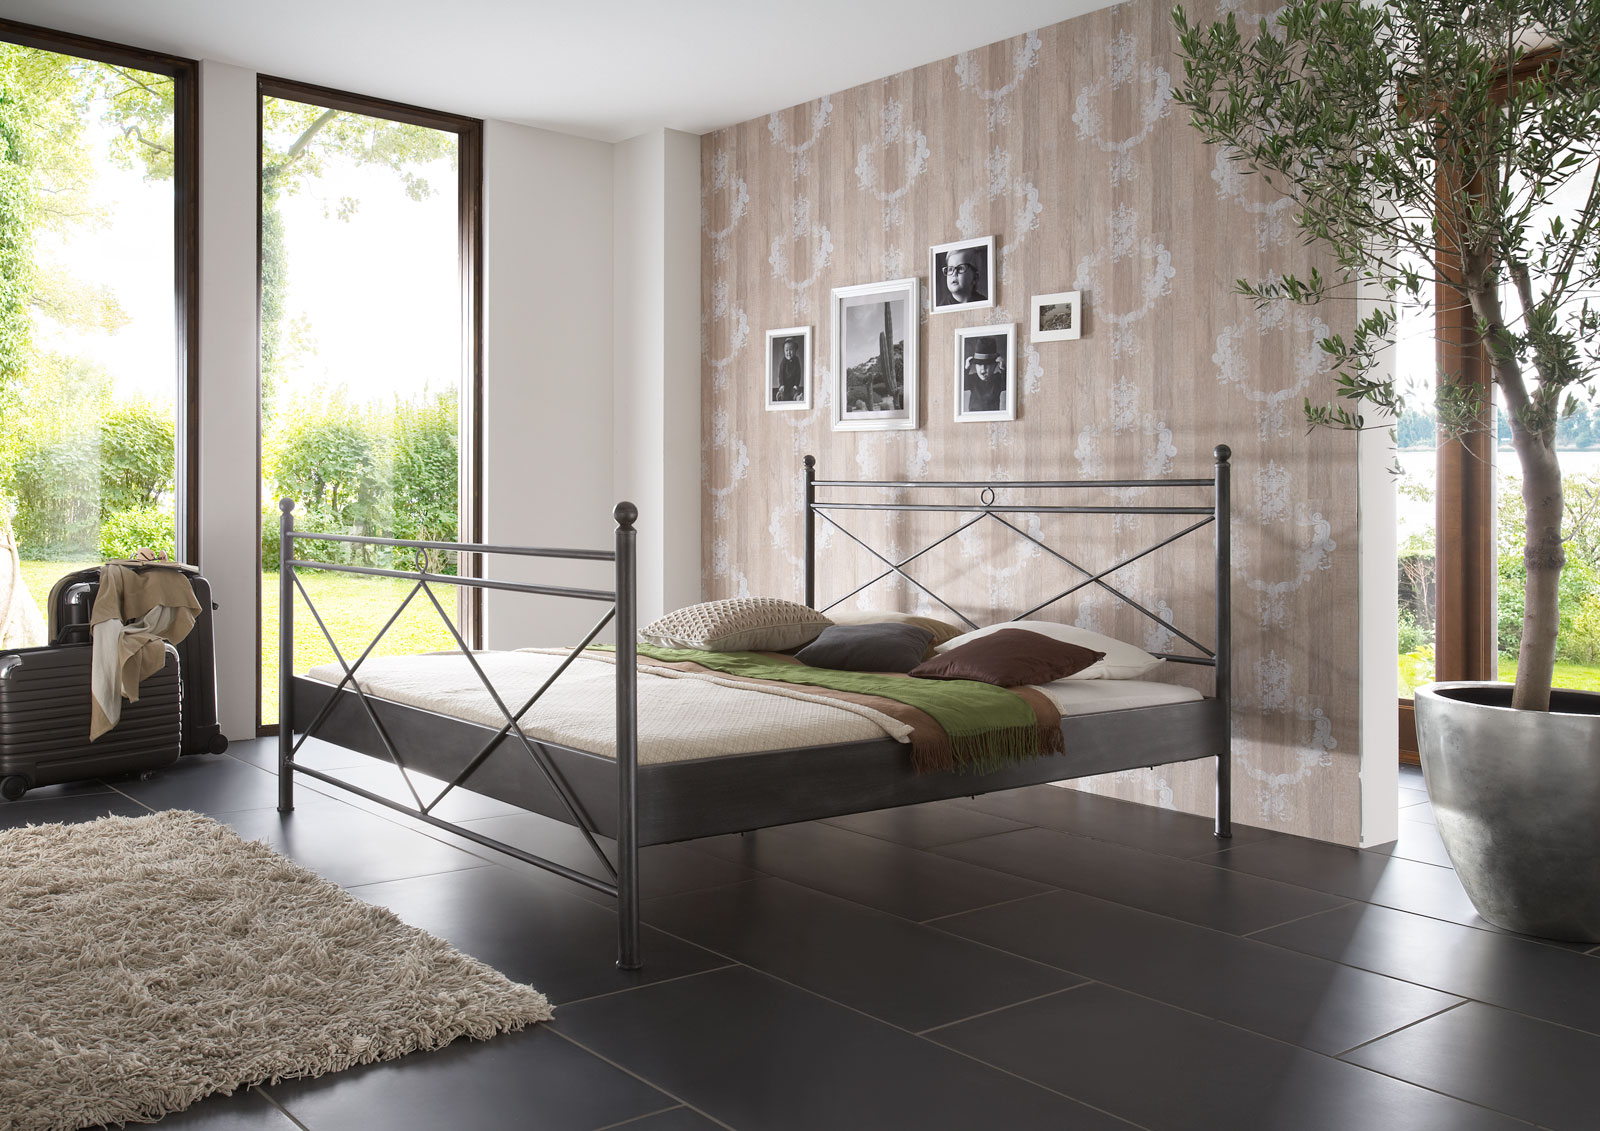 sam metallbett schwarz 180 x 200 cm imola g nstig. Black Bedroom Furniture Sets. Home Design Ideas